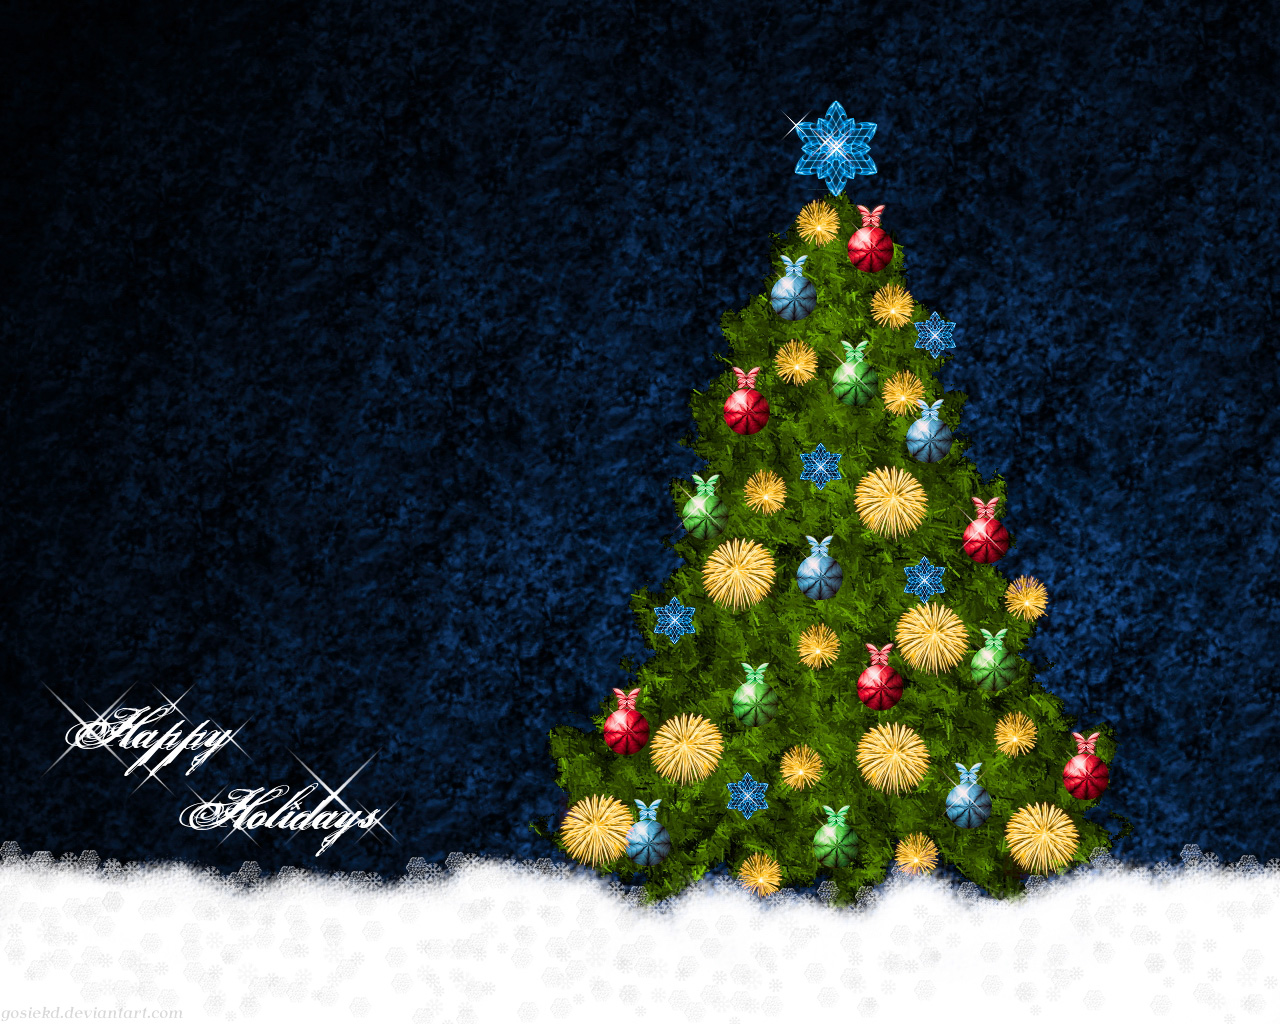 Christmas Wallpaper 21387